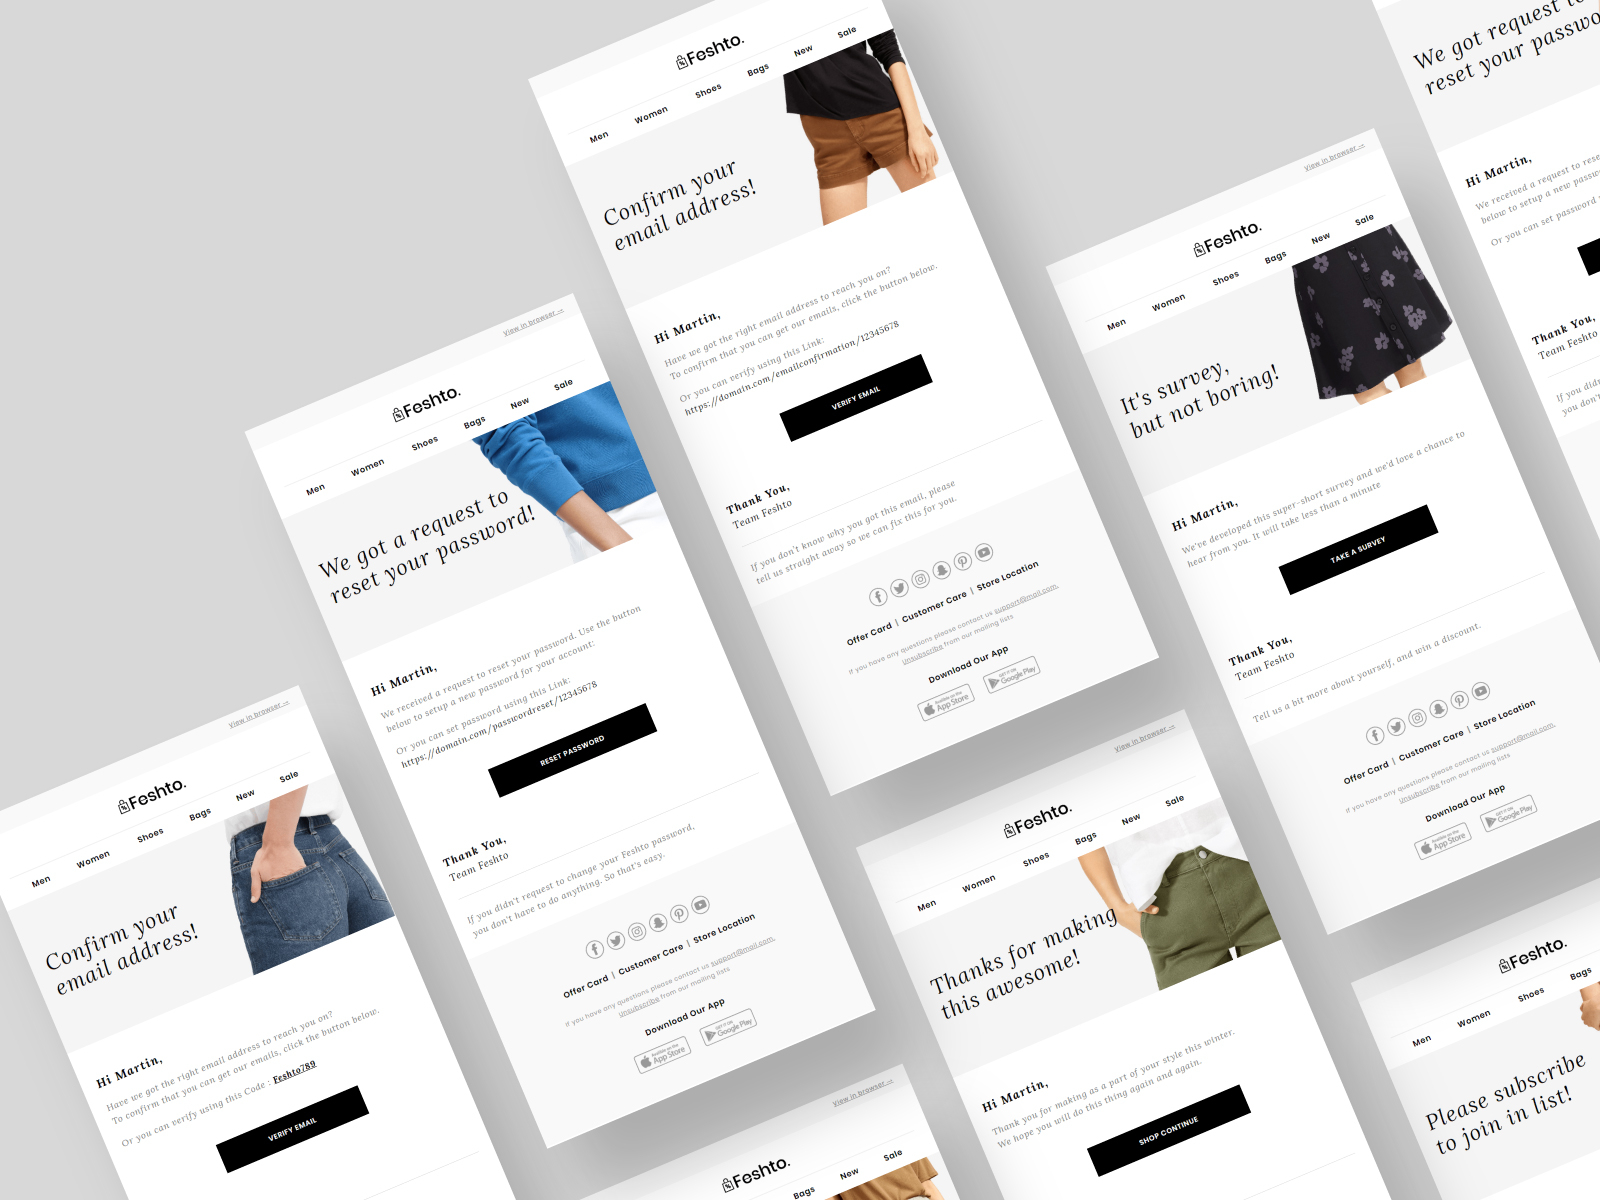 Feshto - Fashion Email Bundle. presentation image